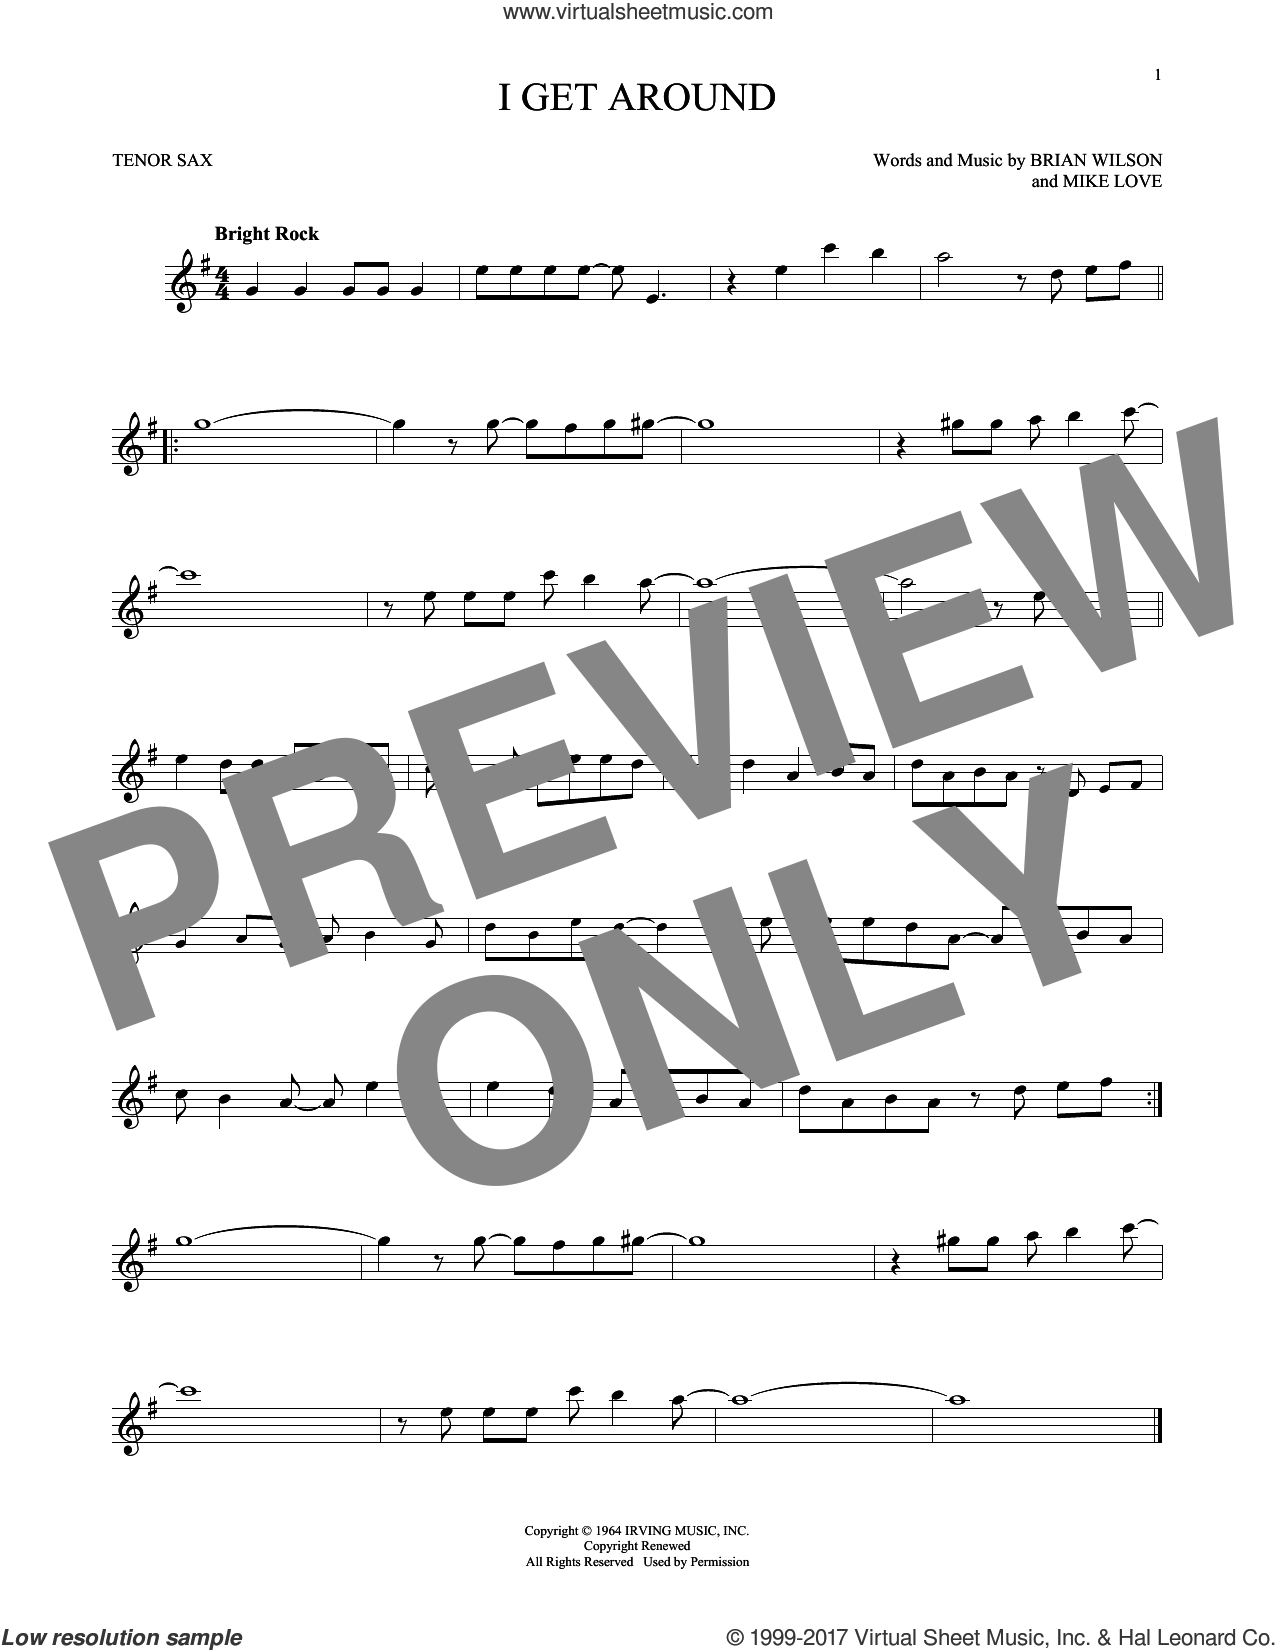 I Get Around sheet music for tenor saxophone solo by The Beach Boys, Brian Wilson and Mike Love, intermediate skill level